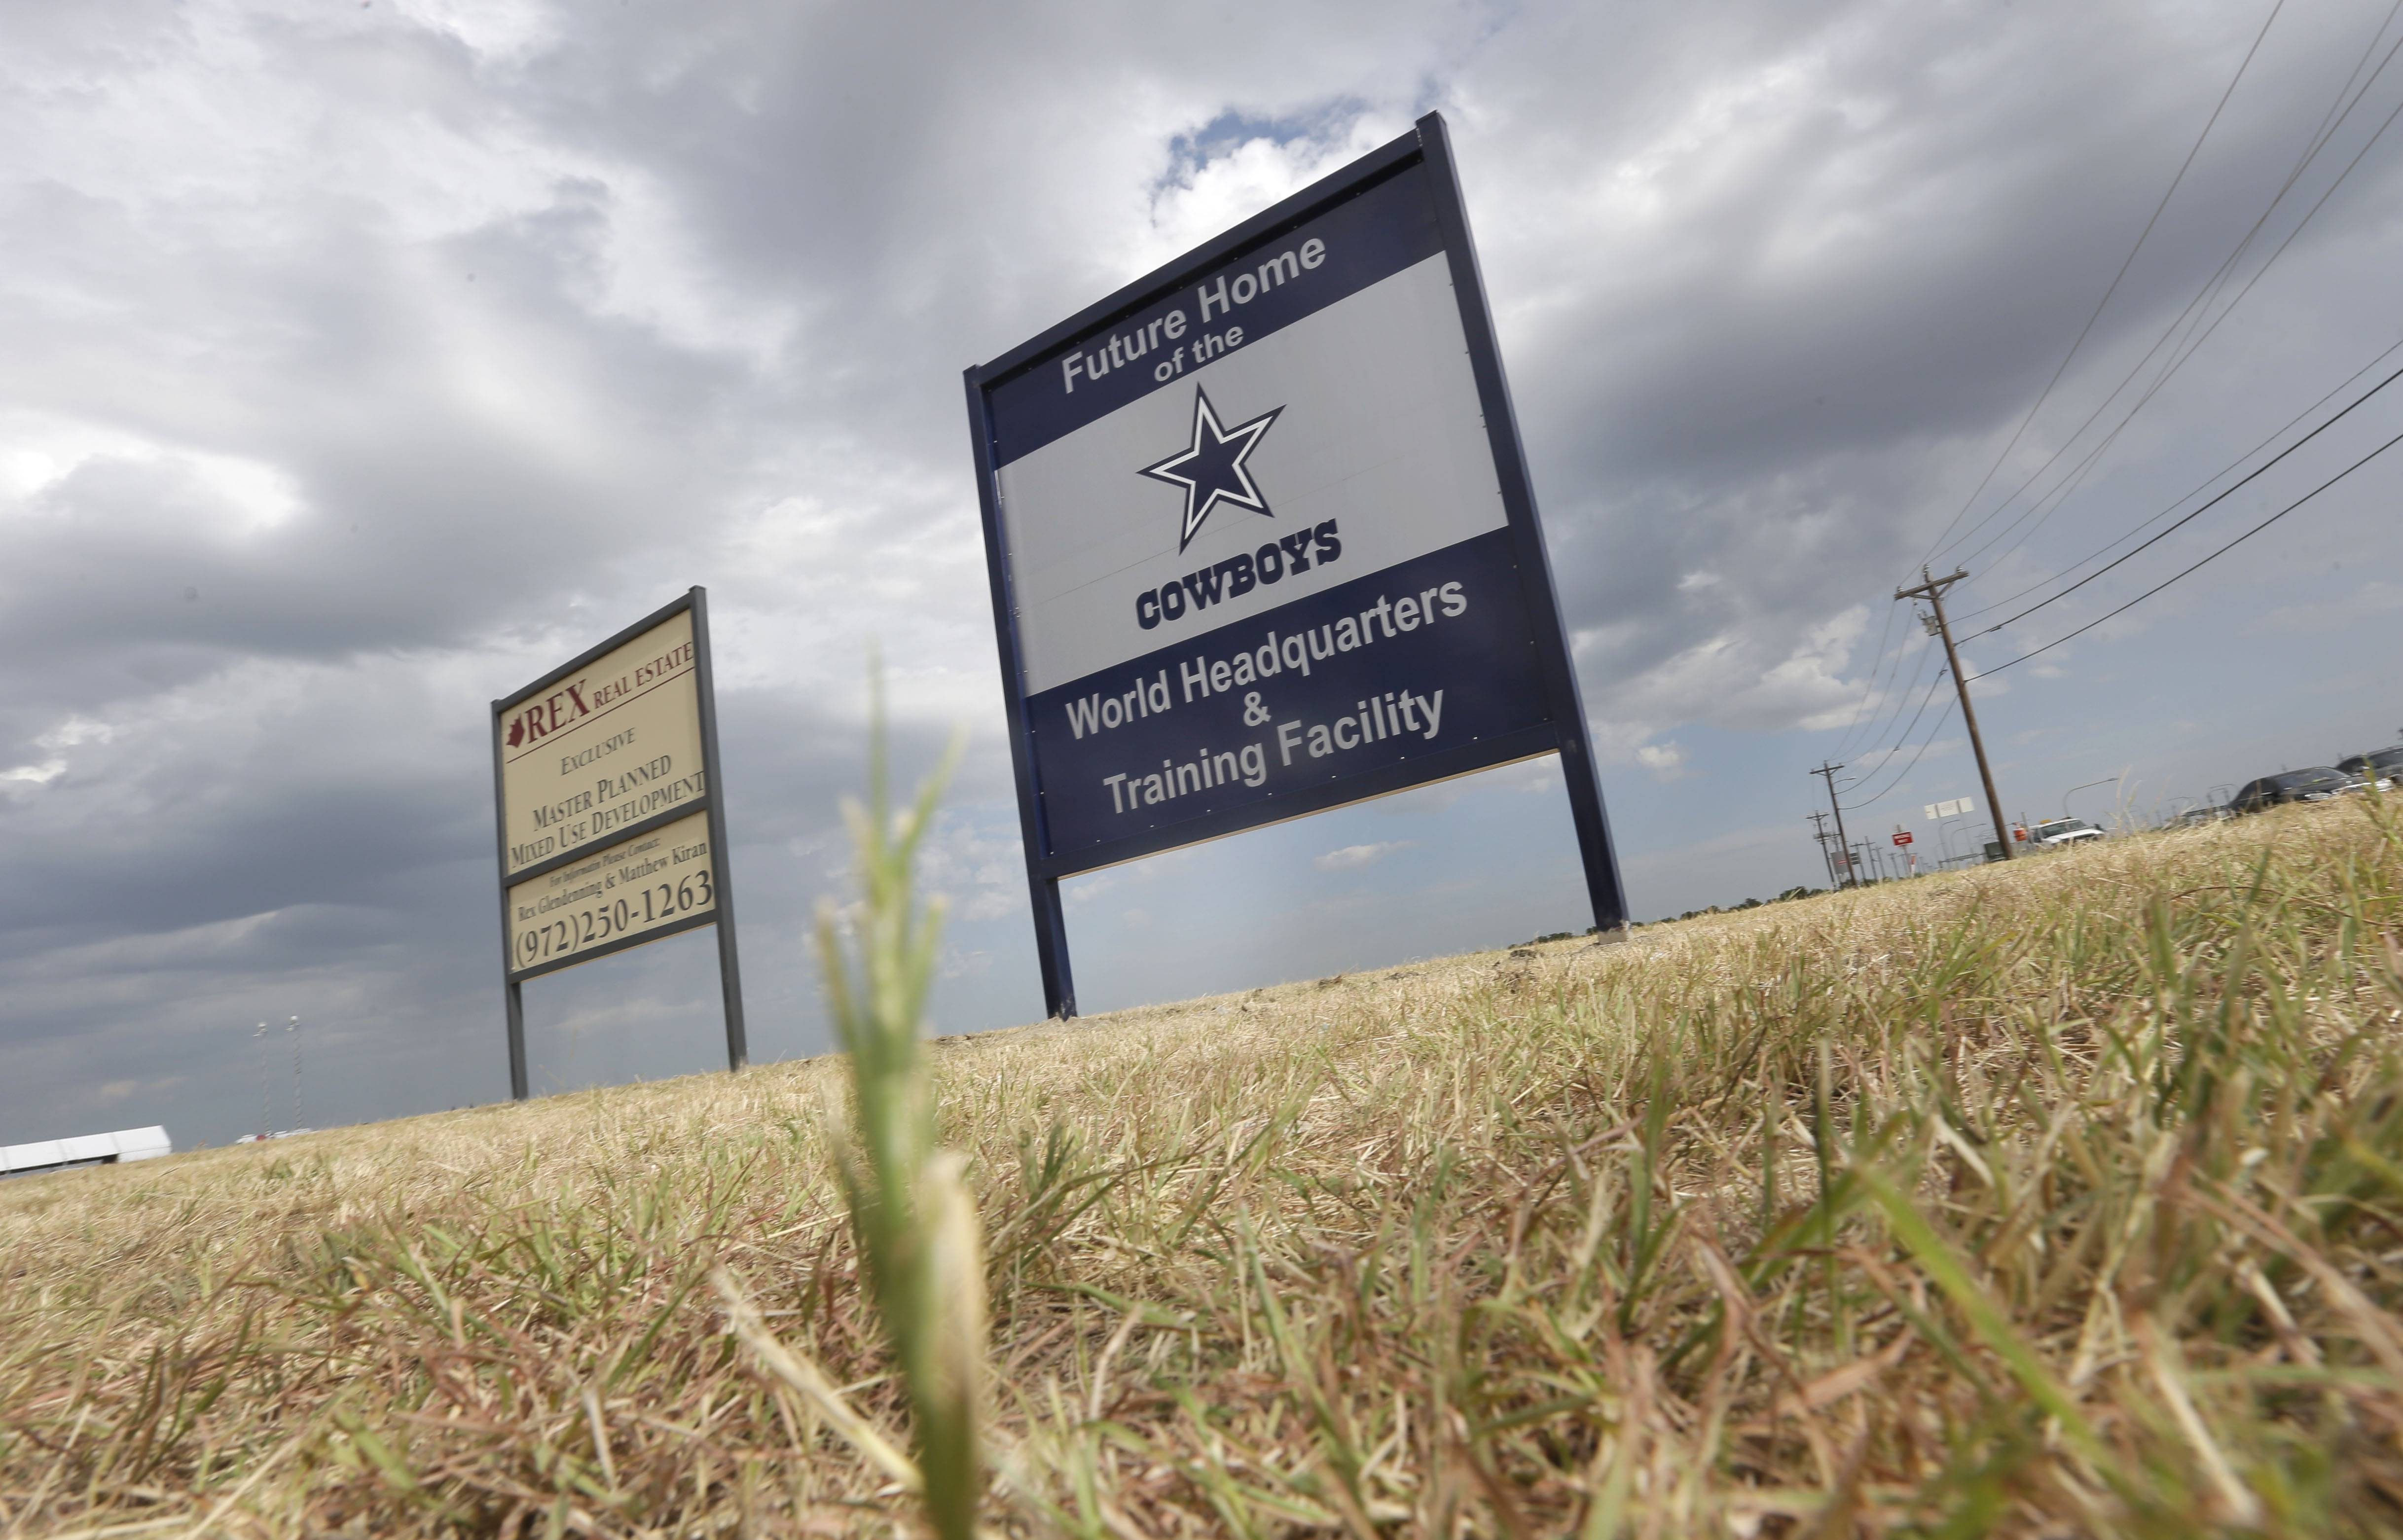 A sign announces the future of the Dallas Cowboys football team headquarters and training facility in Frisco, Texas. New data from the Census Bureau shows that three of the nation's five fastest-growing cities are located in the Lone Star State. San Marcos, Frisco and Cedar Park, Texas were No. 1, 2 and 4 in percentage population growth between 2012 and 2013.